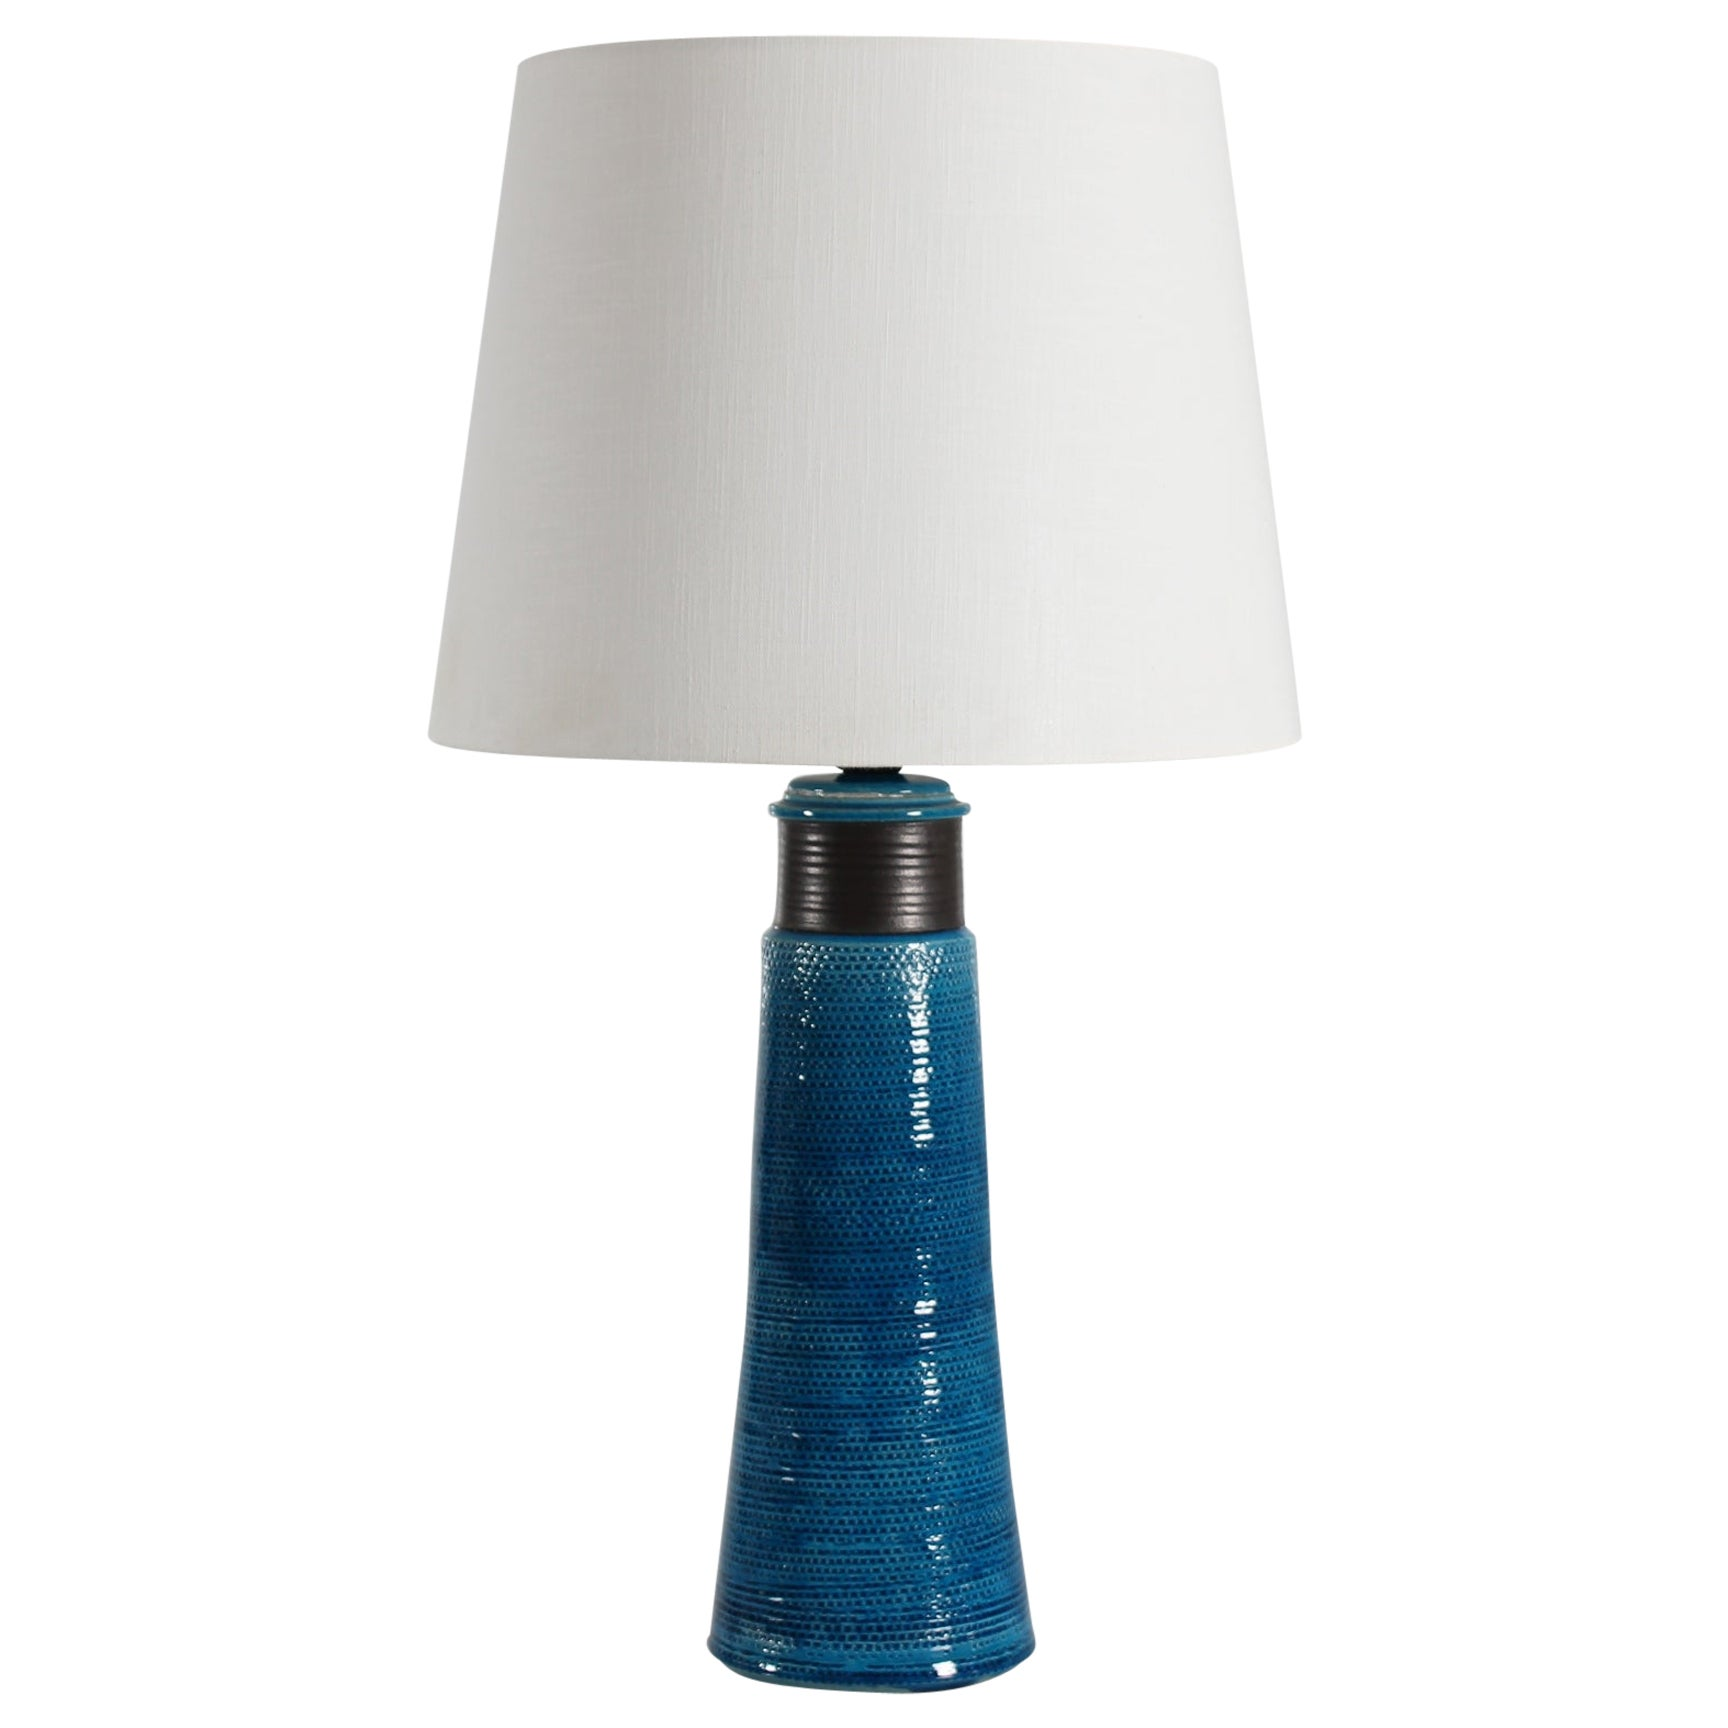 Huge Herman A Kähler Tablelamp with turquoise glaze made in Denmark Mid-century